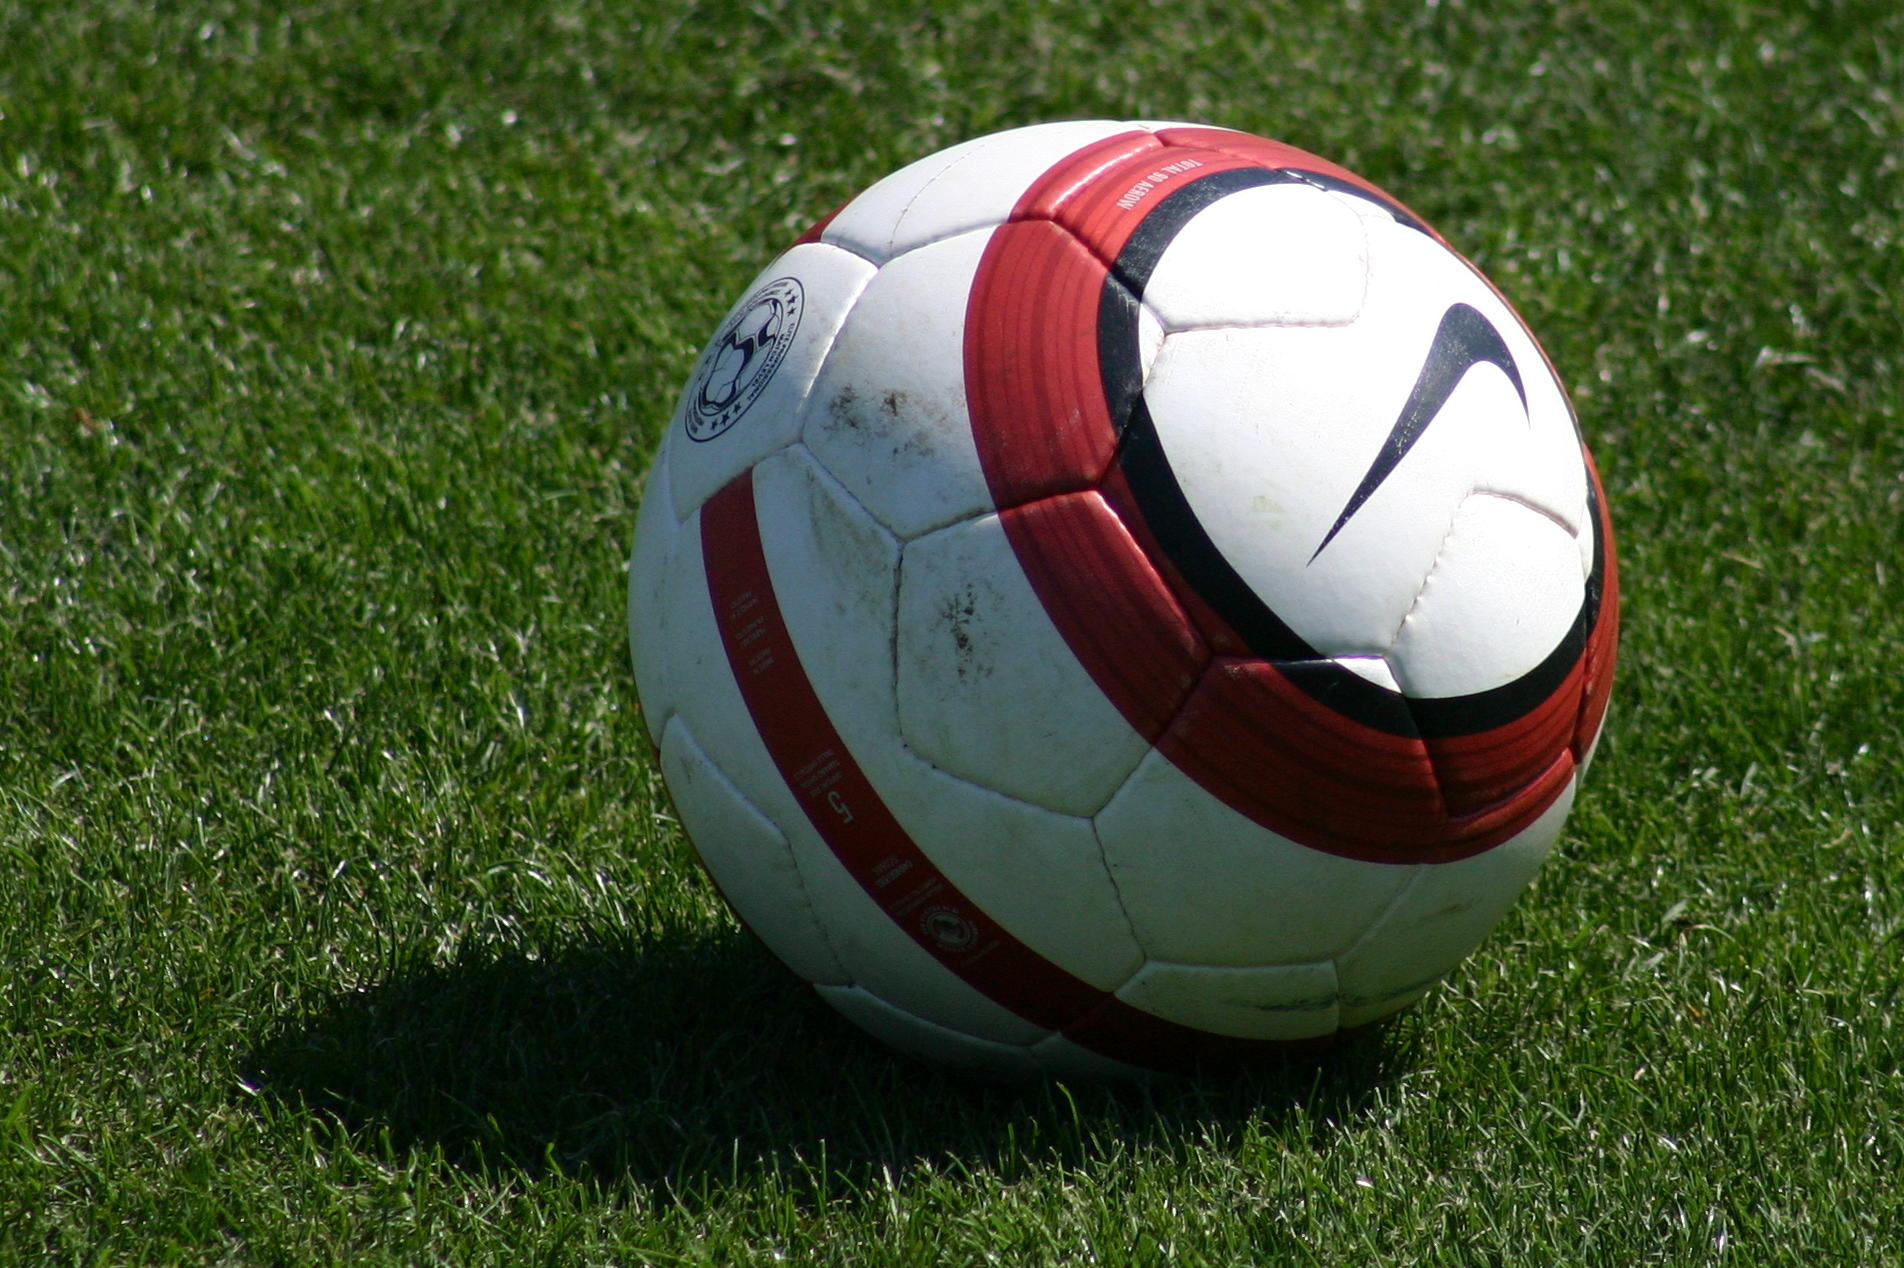 Nike Soccer Ball | Flickr - Photo Sharing!